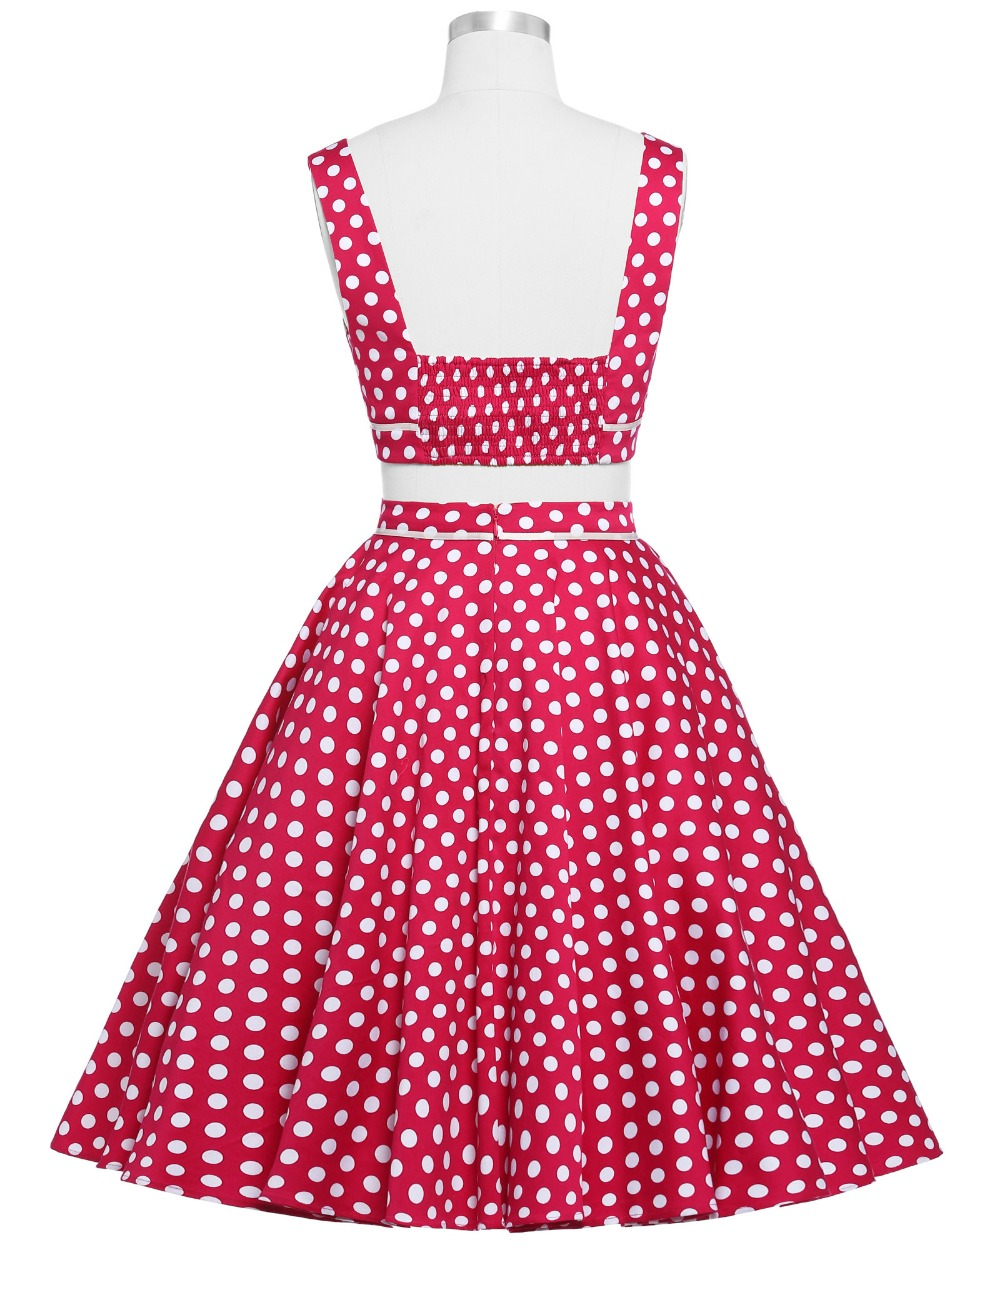 137d0fe38de9 Women Rockabilly swing Clothing pin up Dress robe Polka Dots vestidos  Summer style Retro two piece 50s 1960s Vintage Dresses